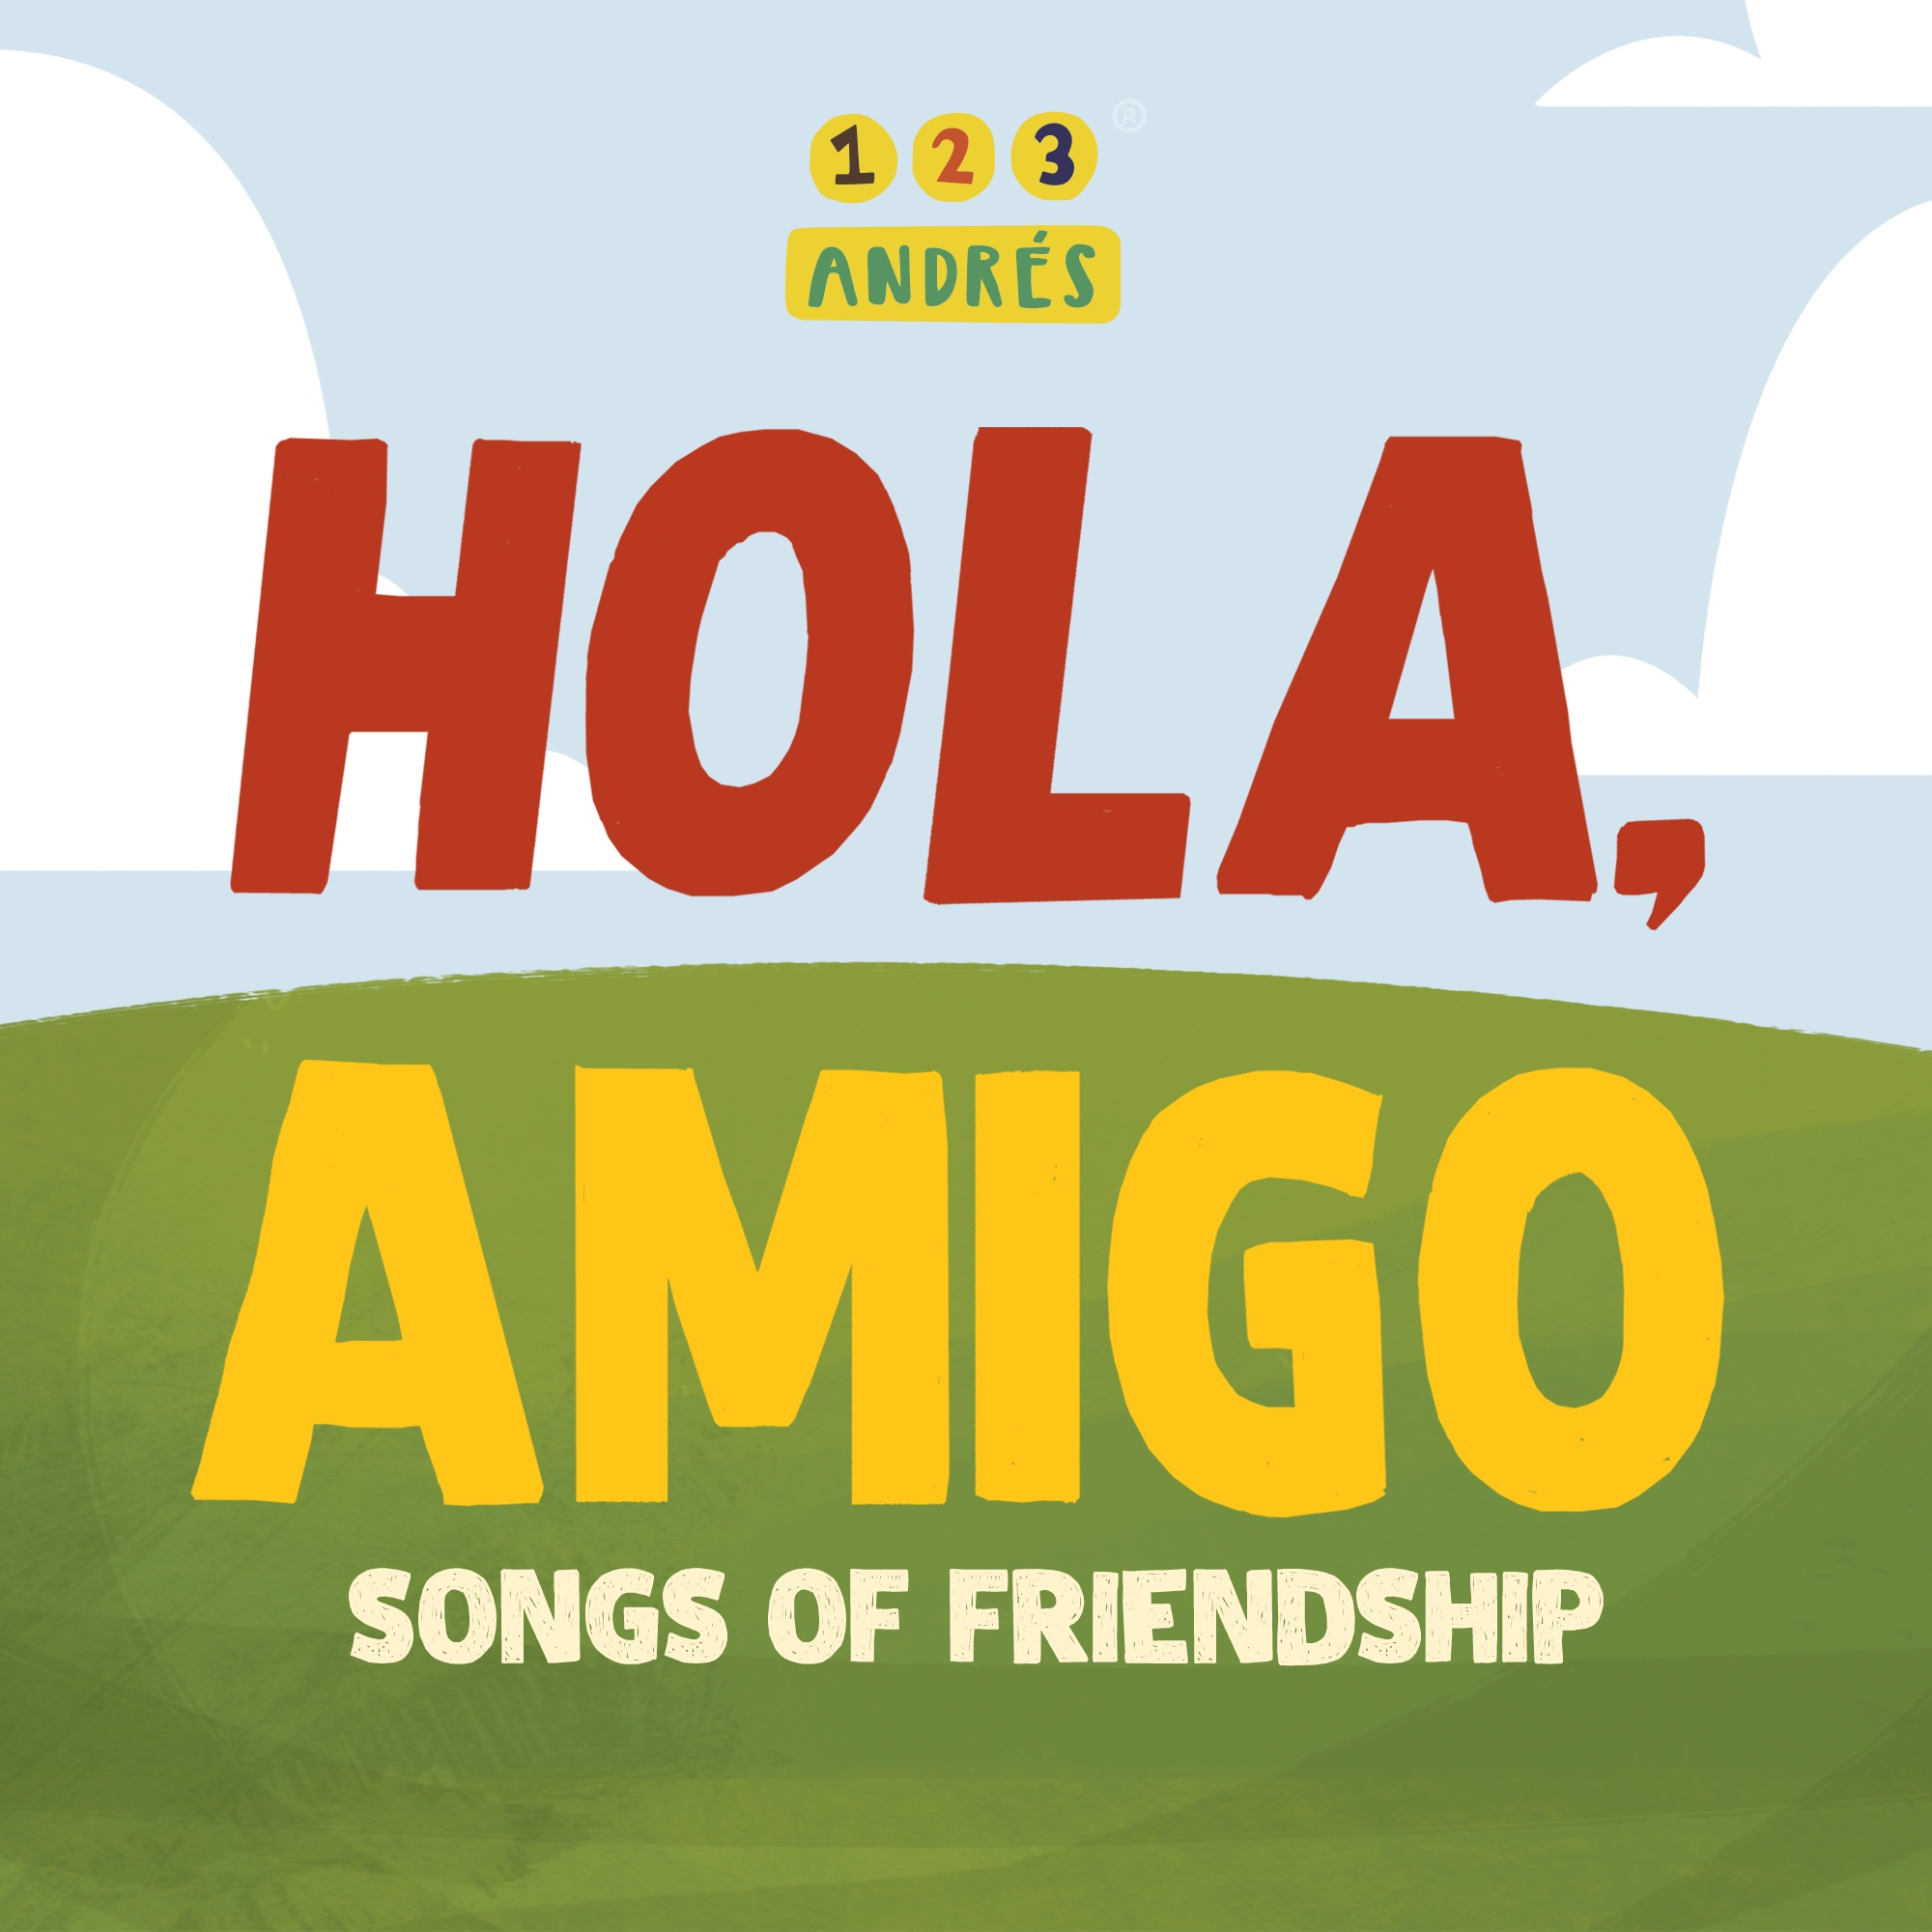 Diversity in kids' music: Hola, Amigo by 123 Andrés